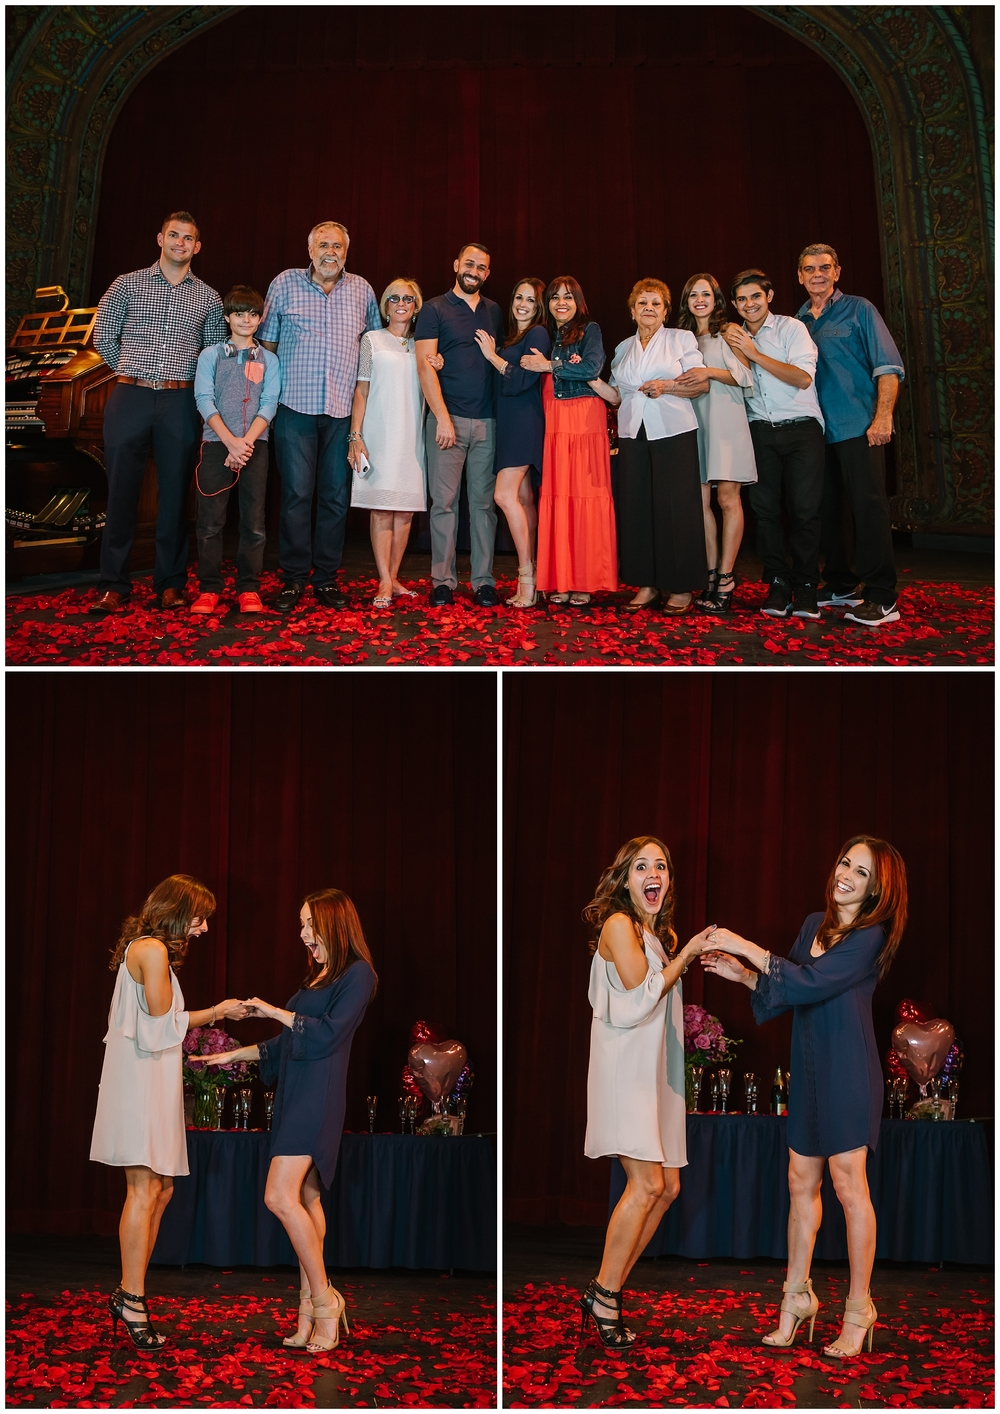 tampa-theater-romantic-surprise-proposal-red-roses-photographer_0015.jpg